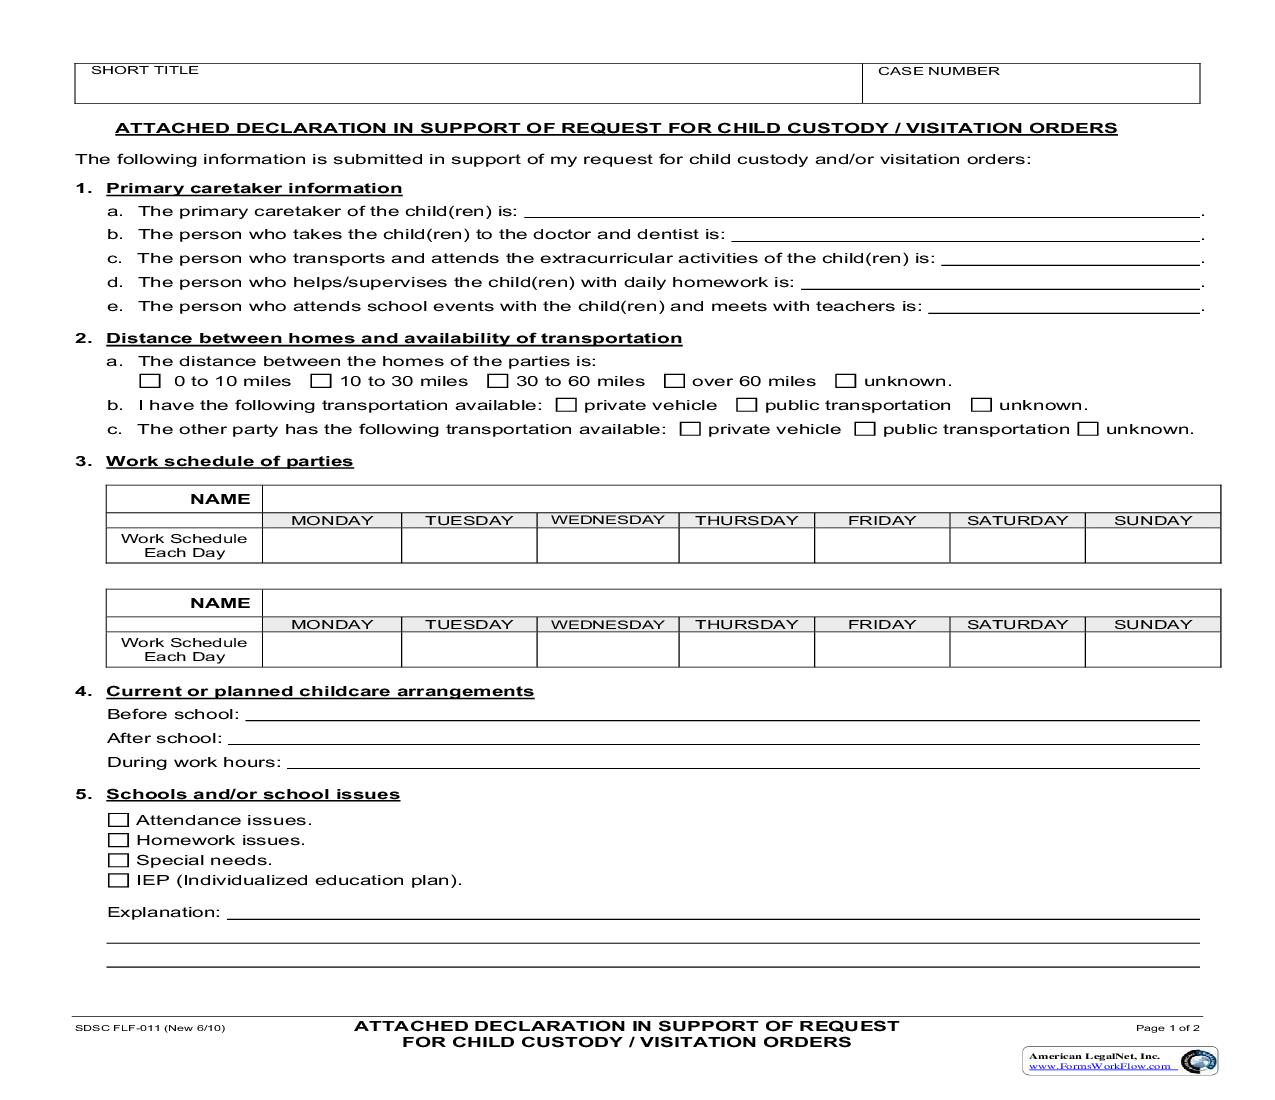 Attached Declaration In Support Of Request For Child Custody-Visitation Orders {FLF-011} | Pdf Fpdf Doc Docx | California